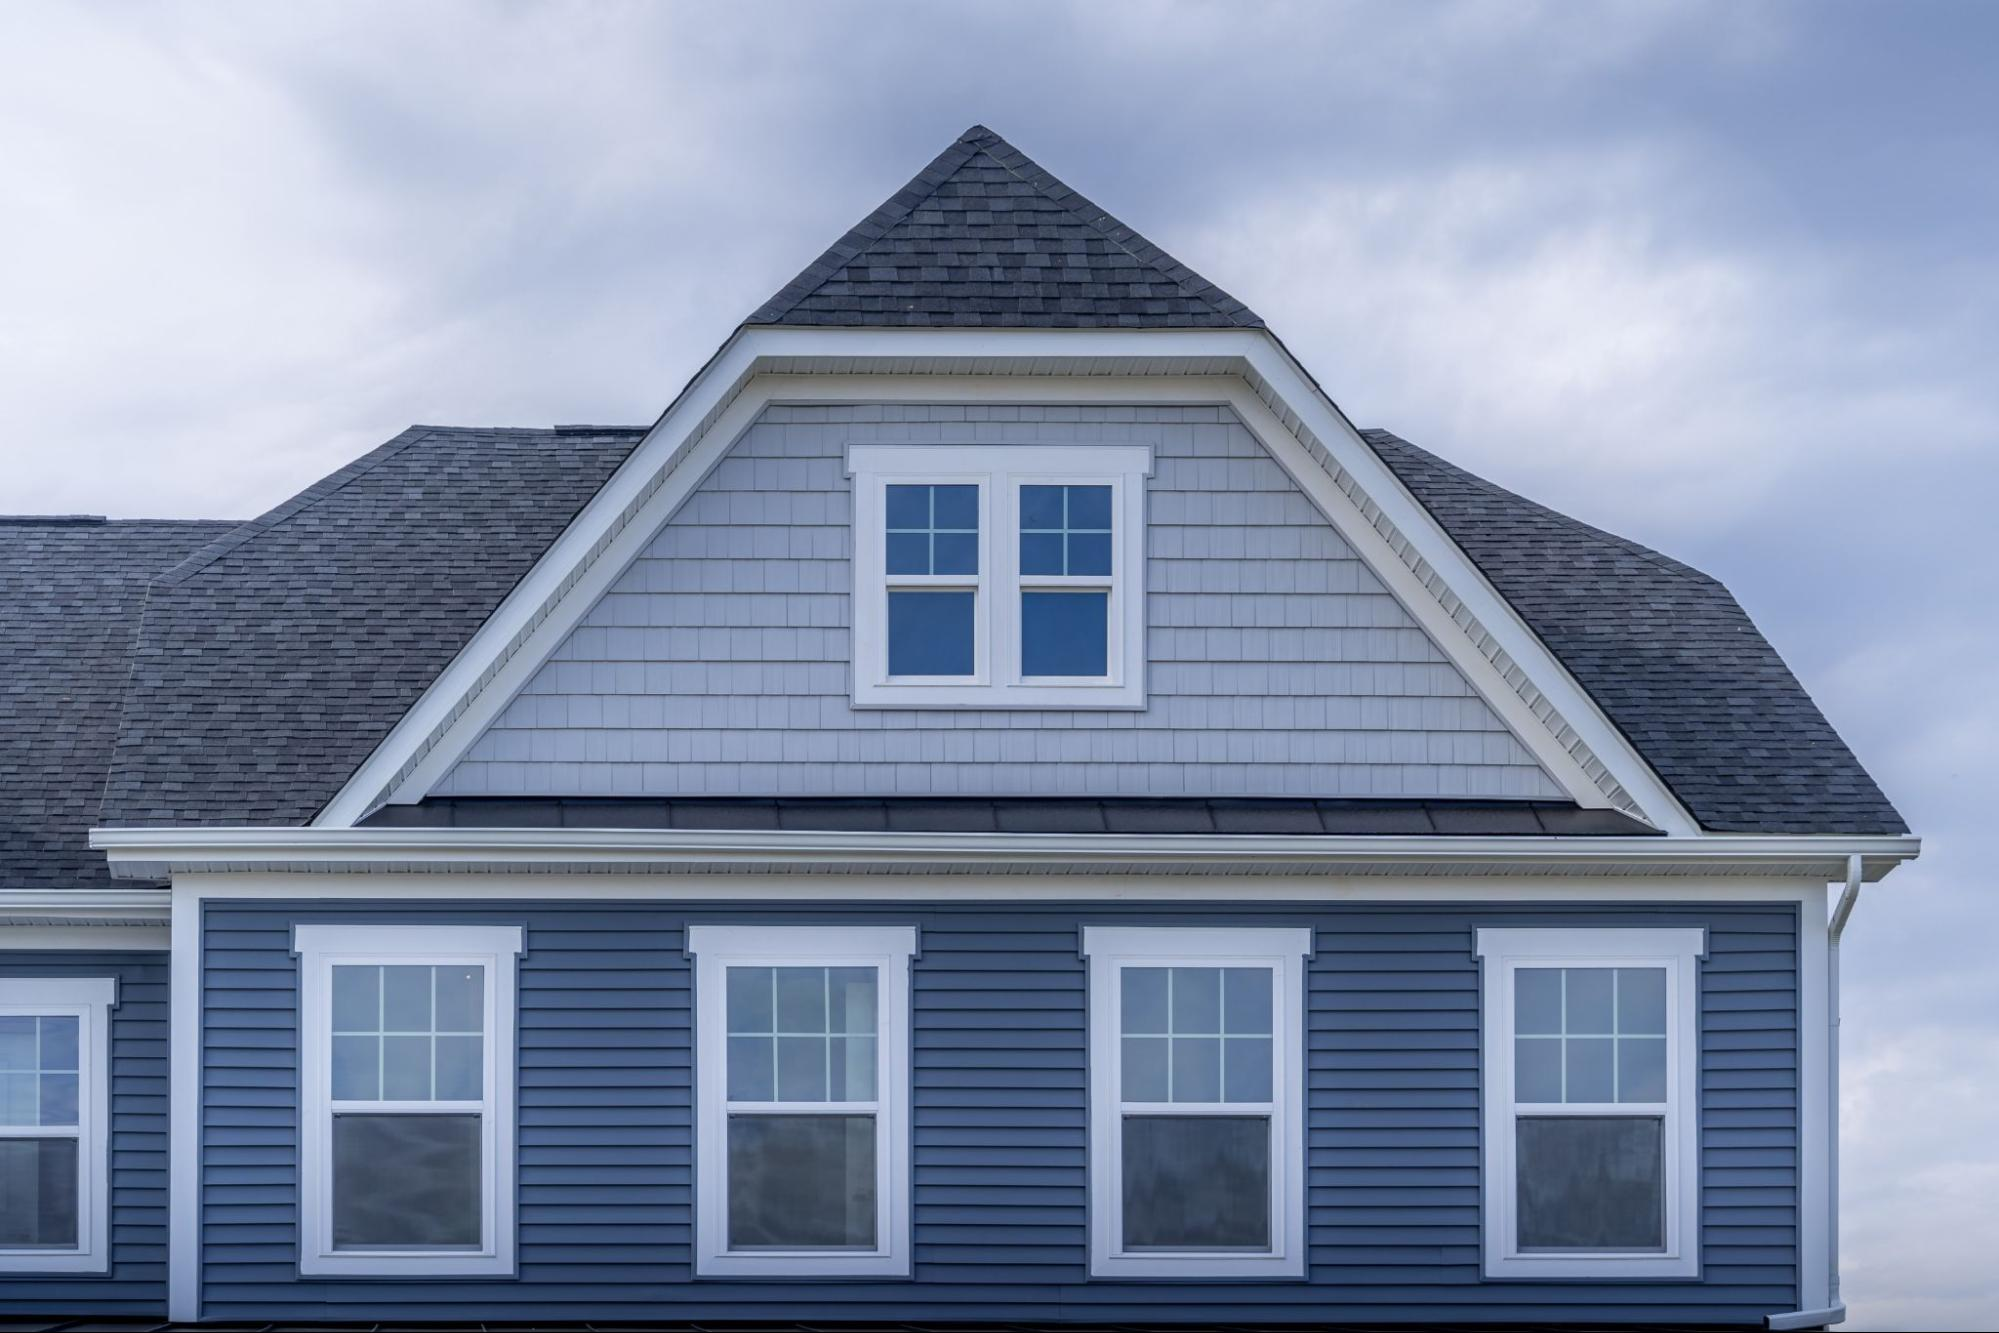 Cropped photo of a big blue house with hung windows